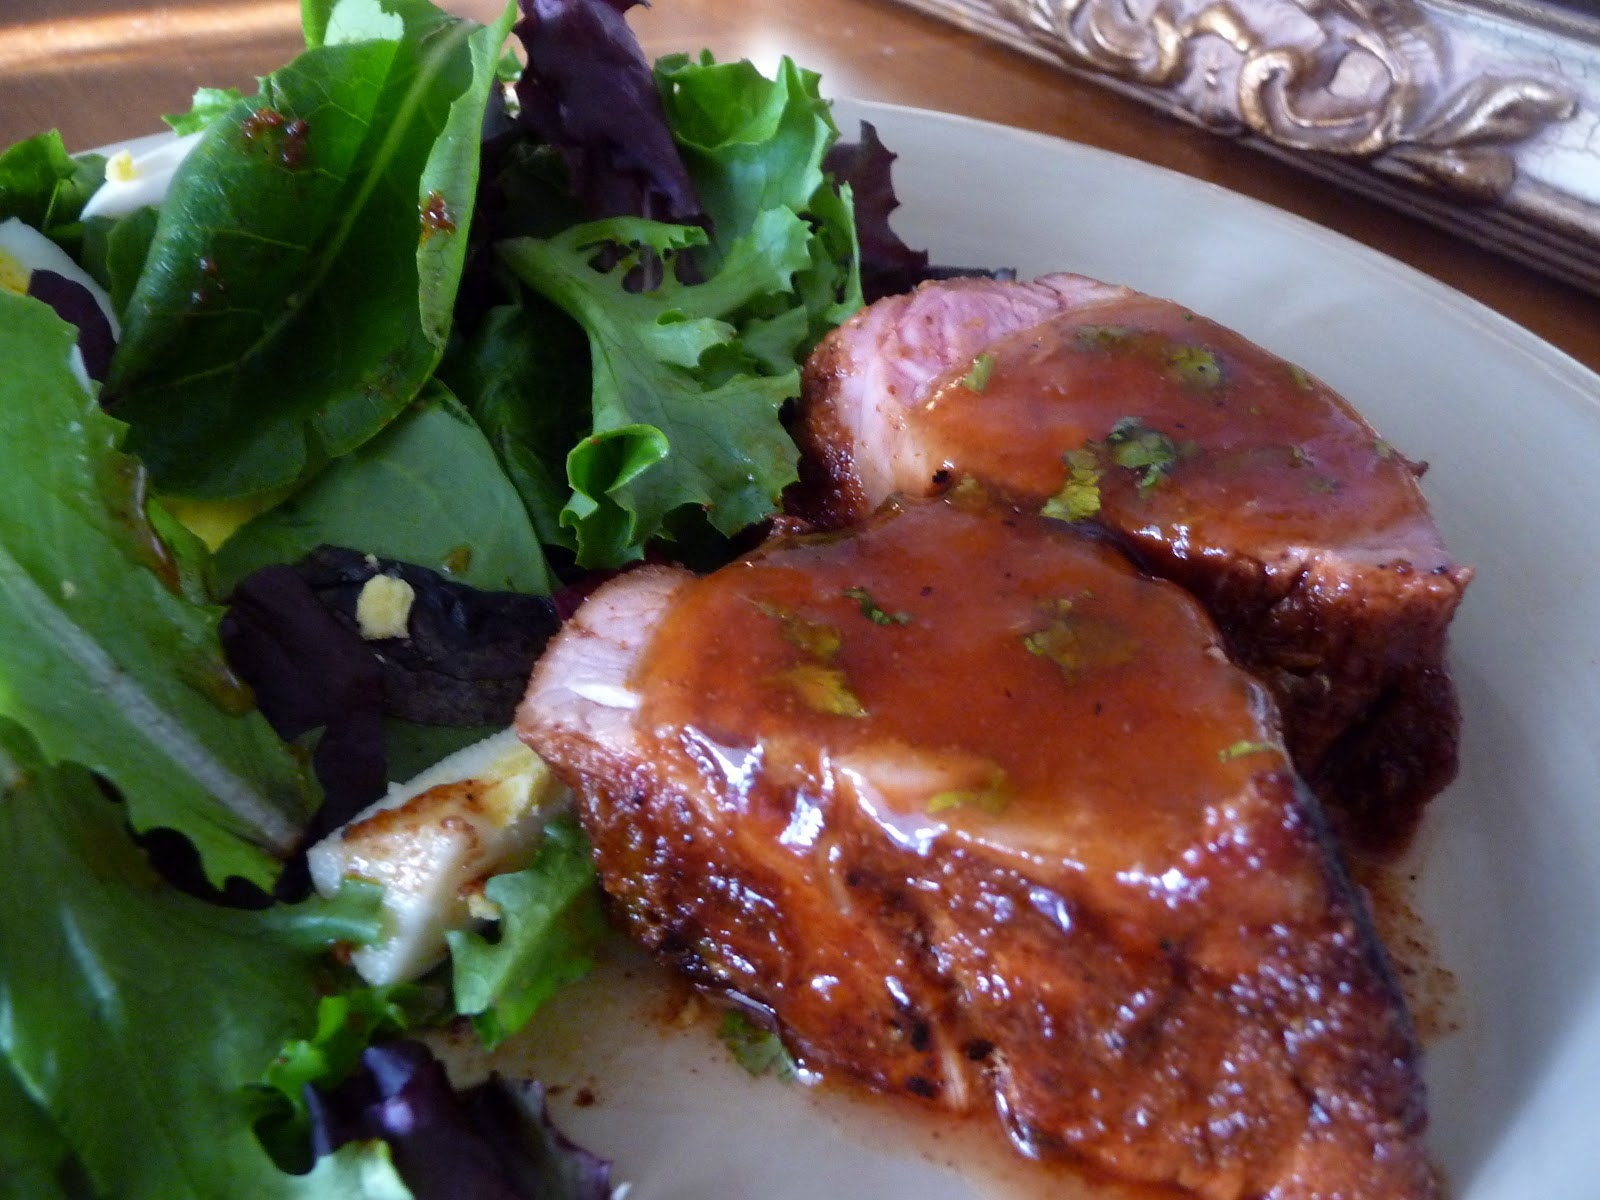 Chili Rubbed Pork Tenderloin with Apricot Ginger Glaze ...